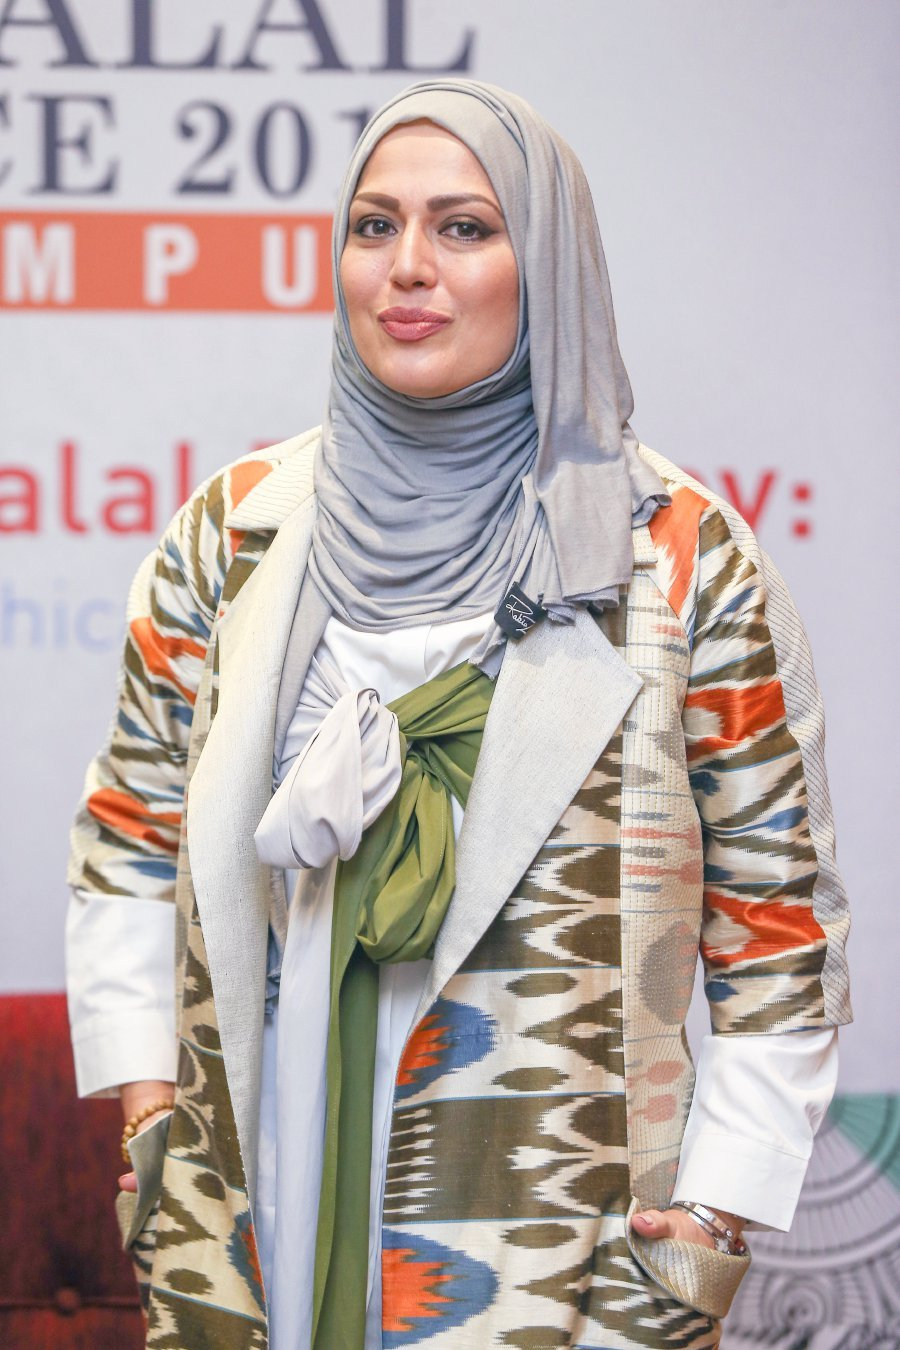 Rabia Z champions modest and ethical fashion | New Straits Times